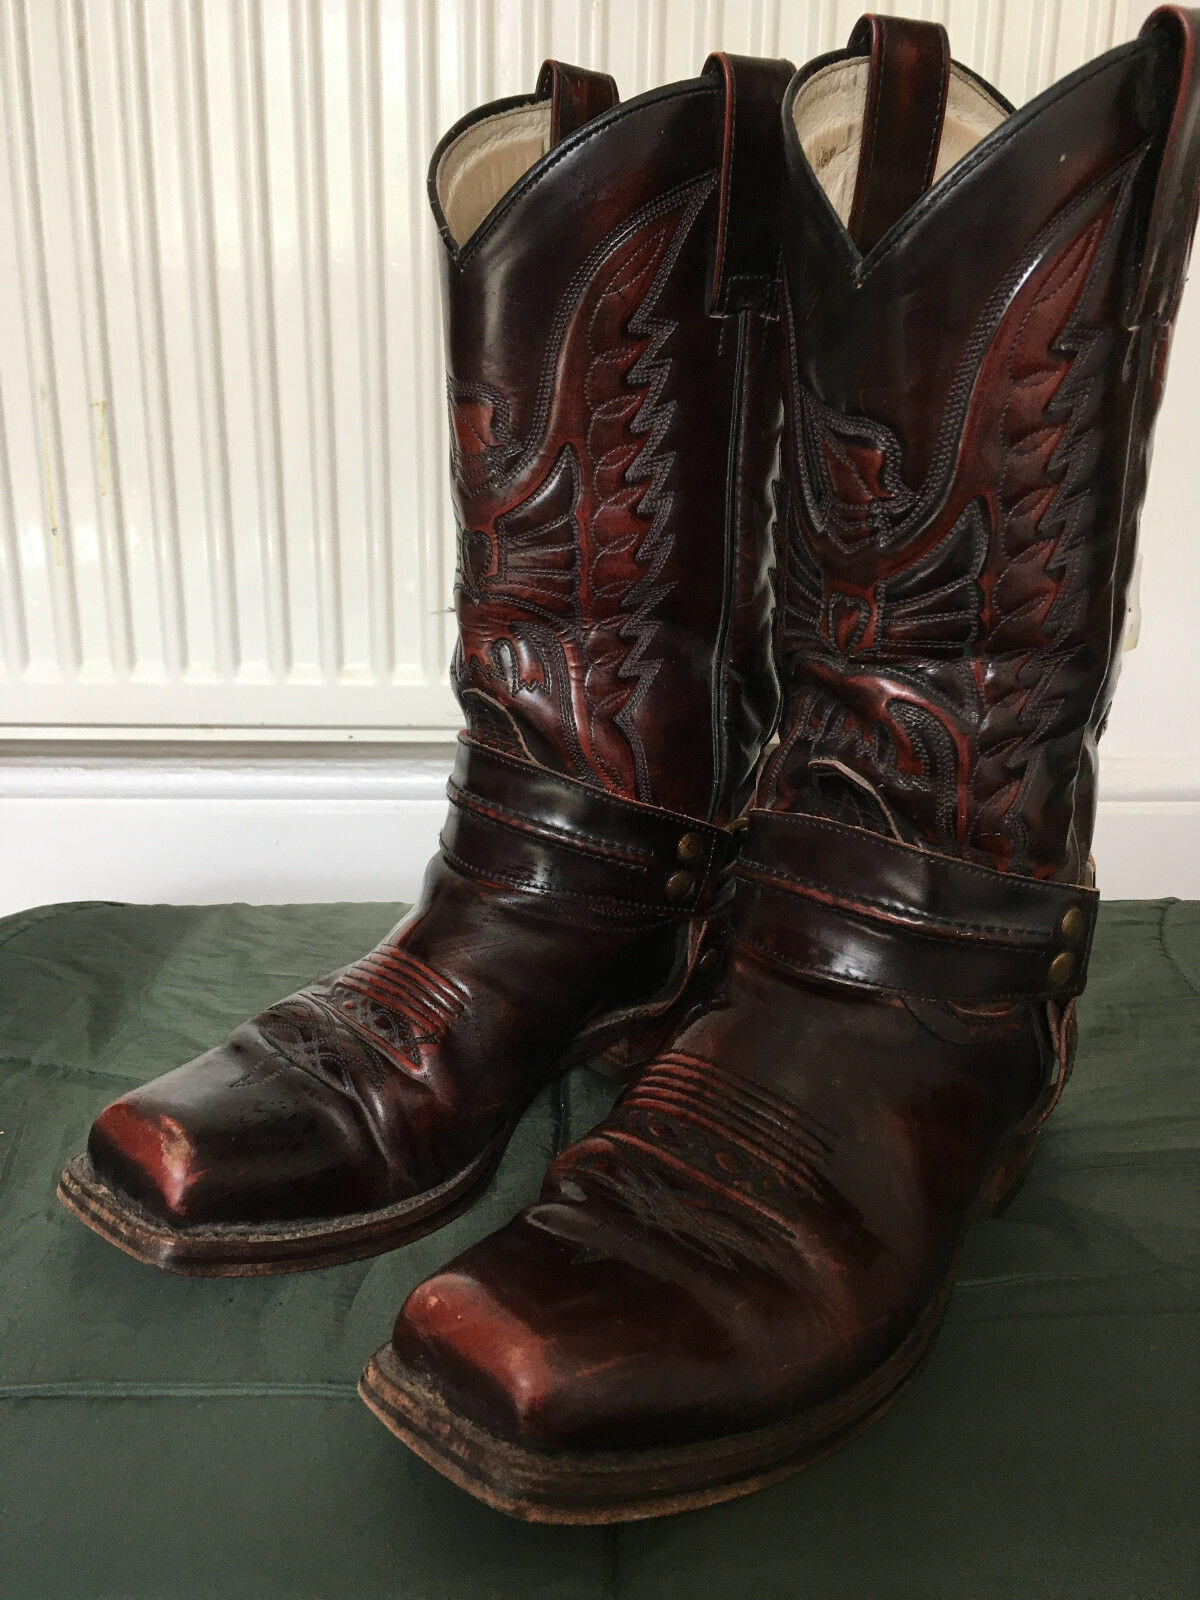 8c1f18481dd Sendra Harness / Cowboy Boots Size 9.5 / 10 UK, very good condition • £72.00